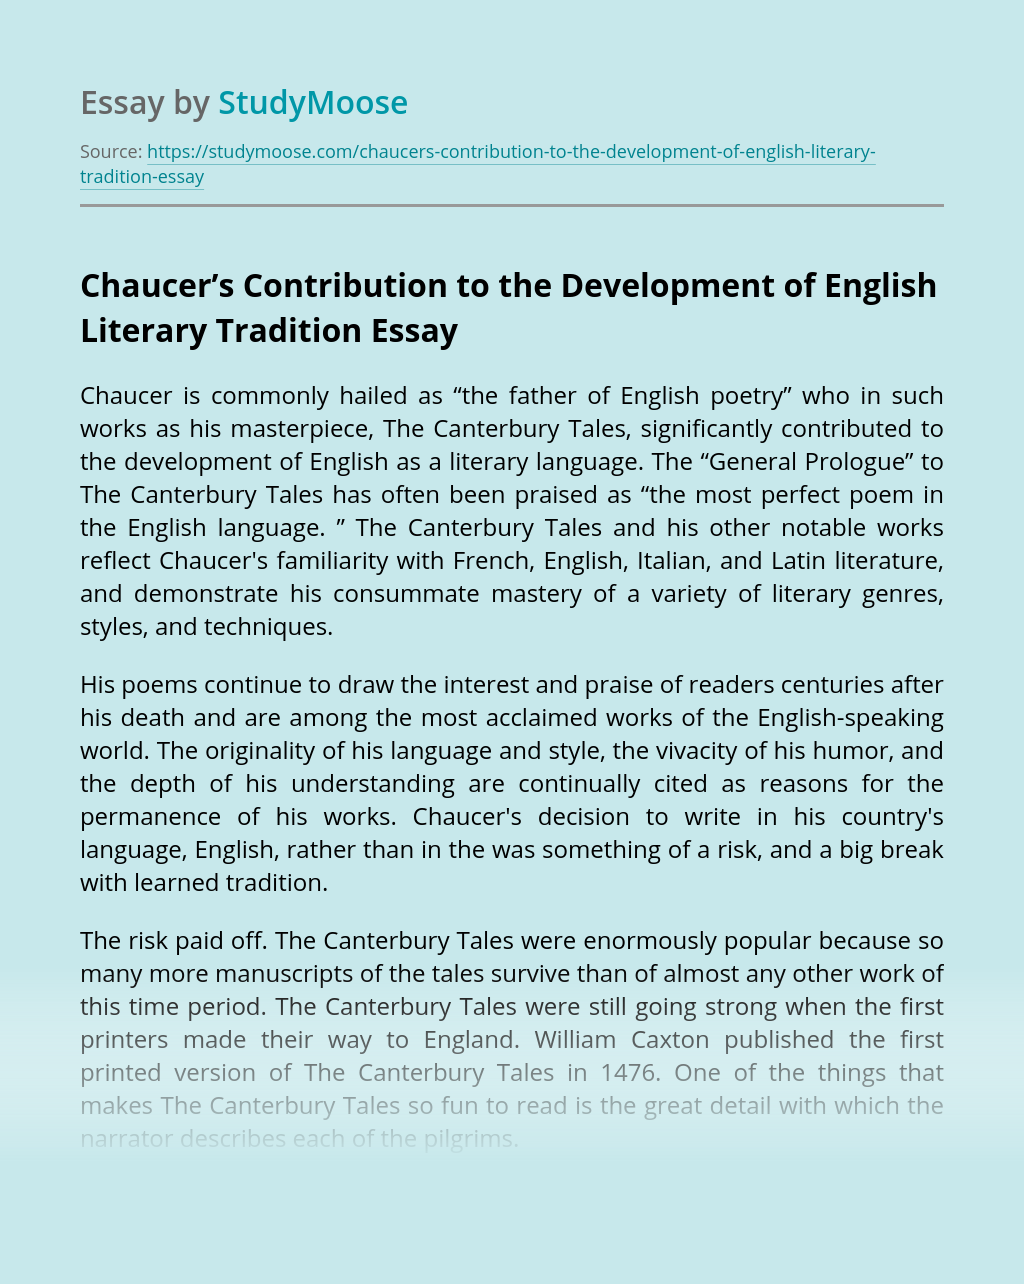 Chaucer's Contribution to the Development of English Literary Tradition